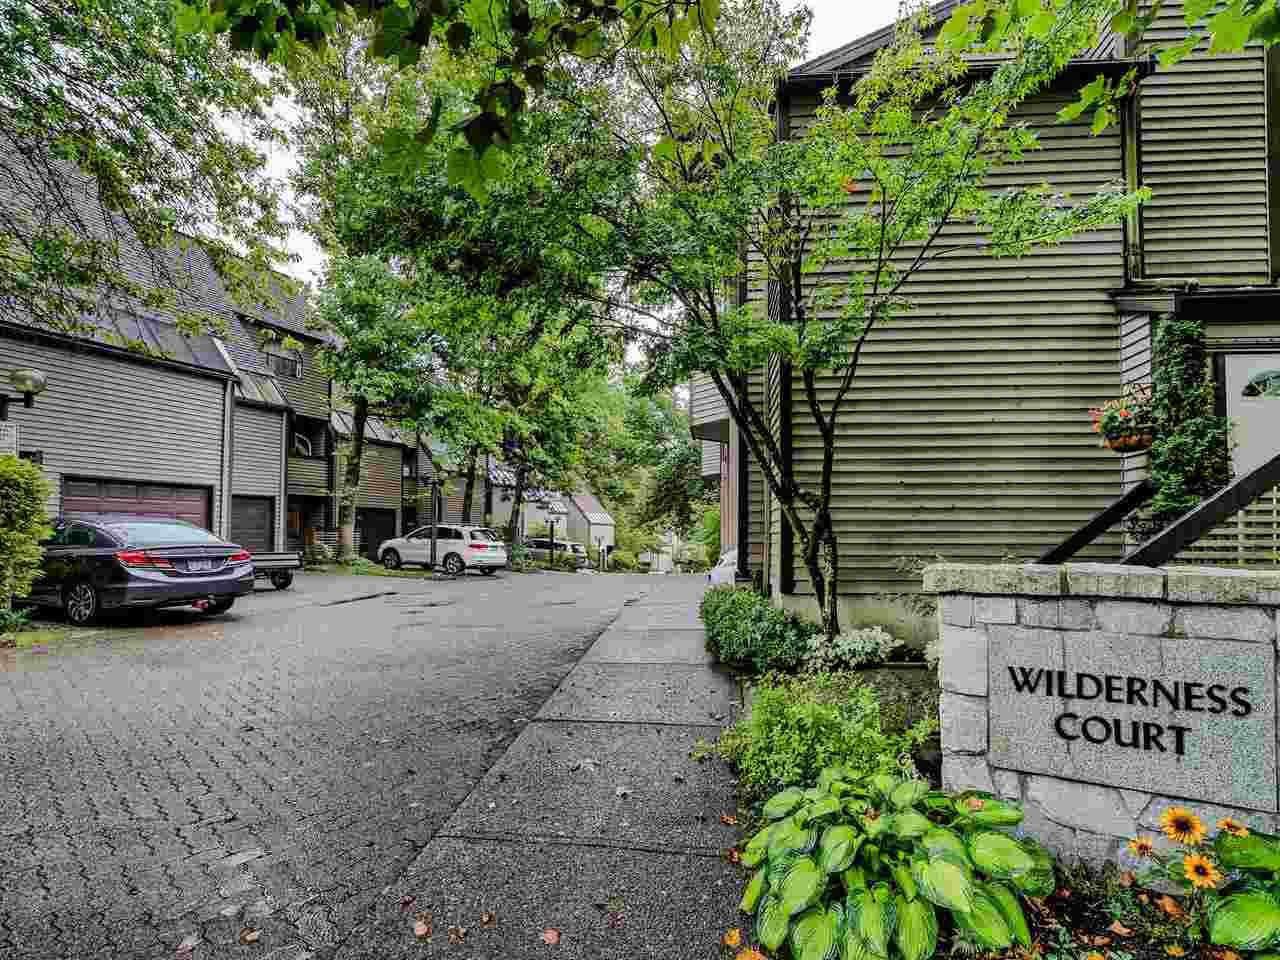 """Main Photo: 8551 WILDERNESS Court in Burnaby: Forest Hills BN Townhouse for sale in """"Simon Fraser Village"""" (Burnaby North)  : MLS®# R2490108"""